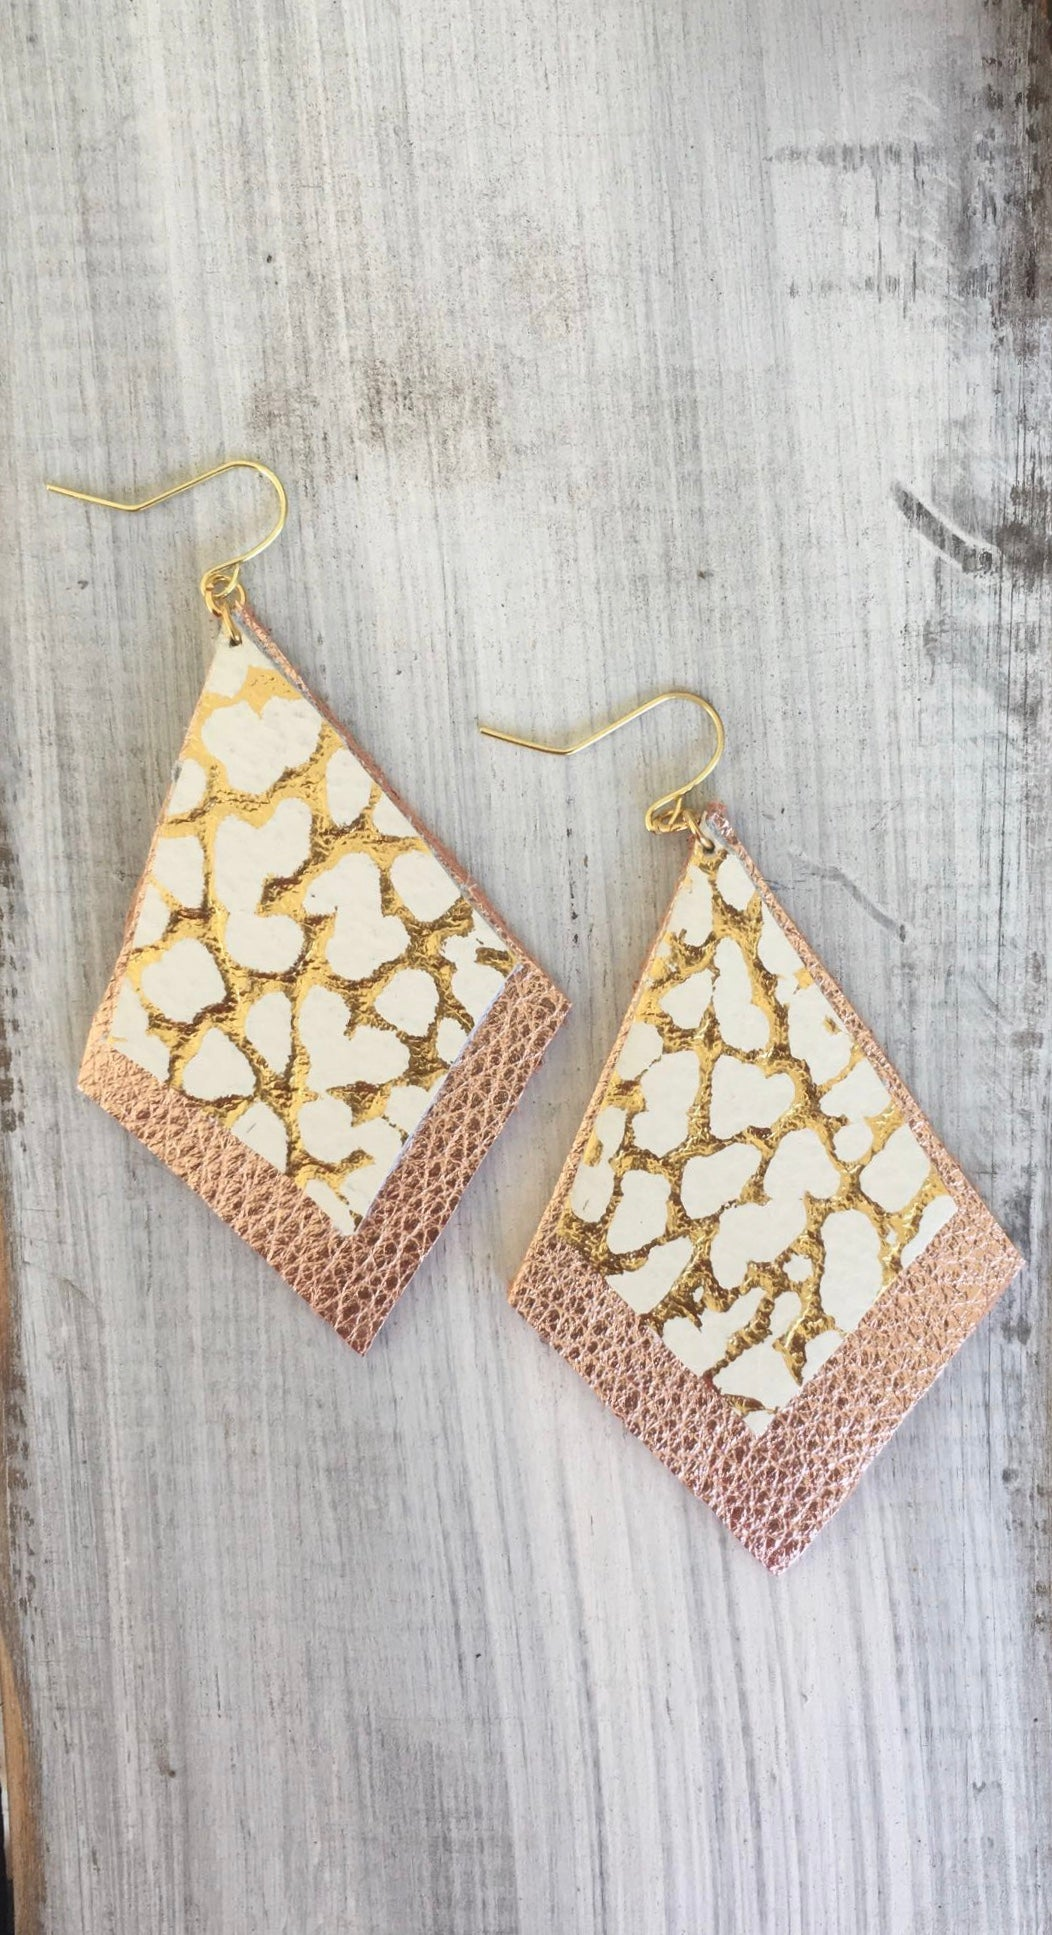 Rose Gold + Gold Leather Earrings